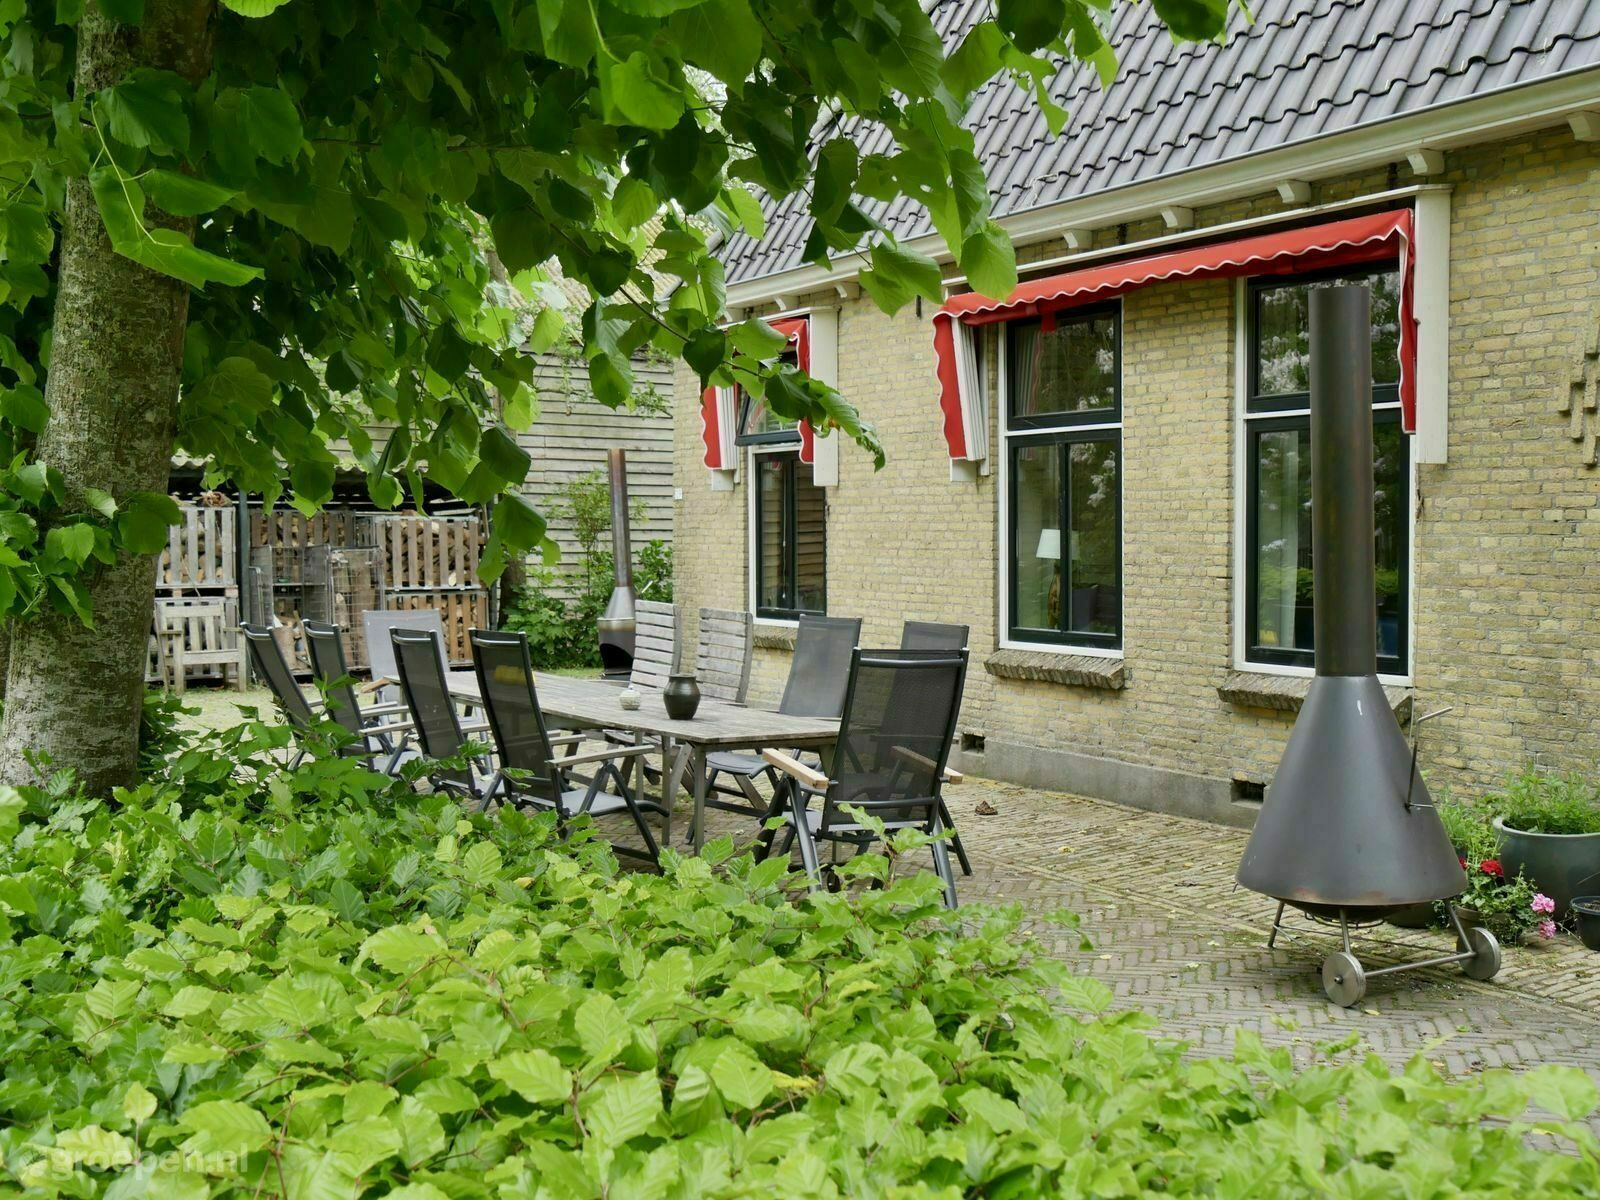 Holiday Farmhouse Uitwellingerga (copy)